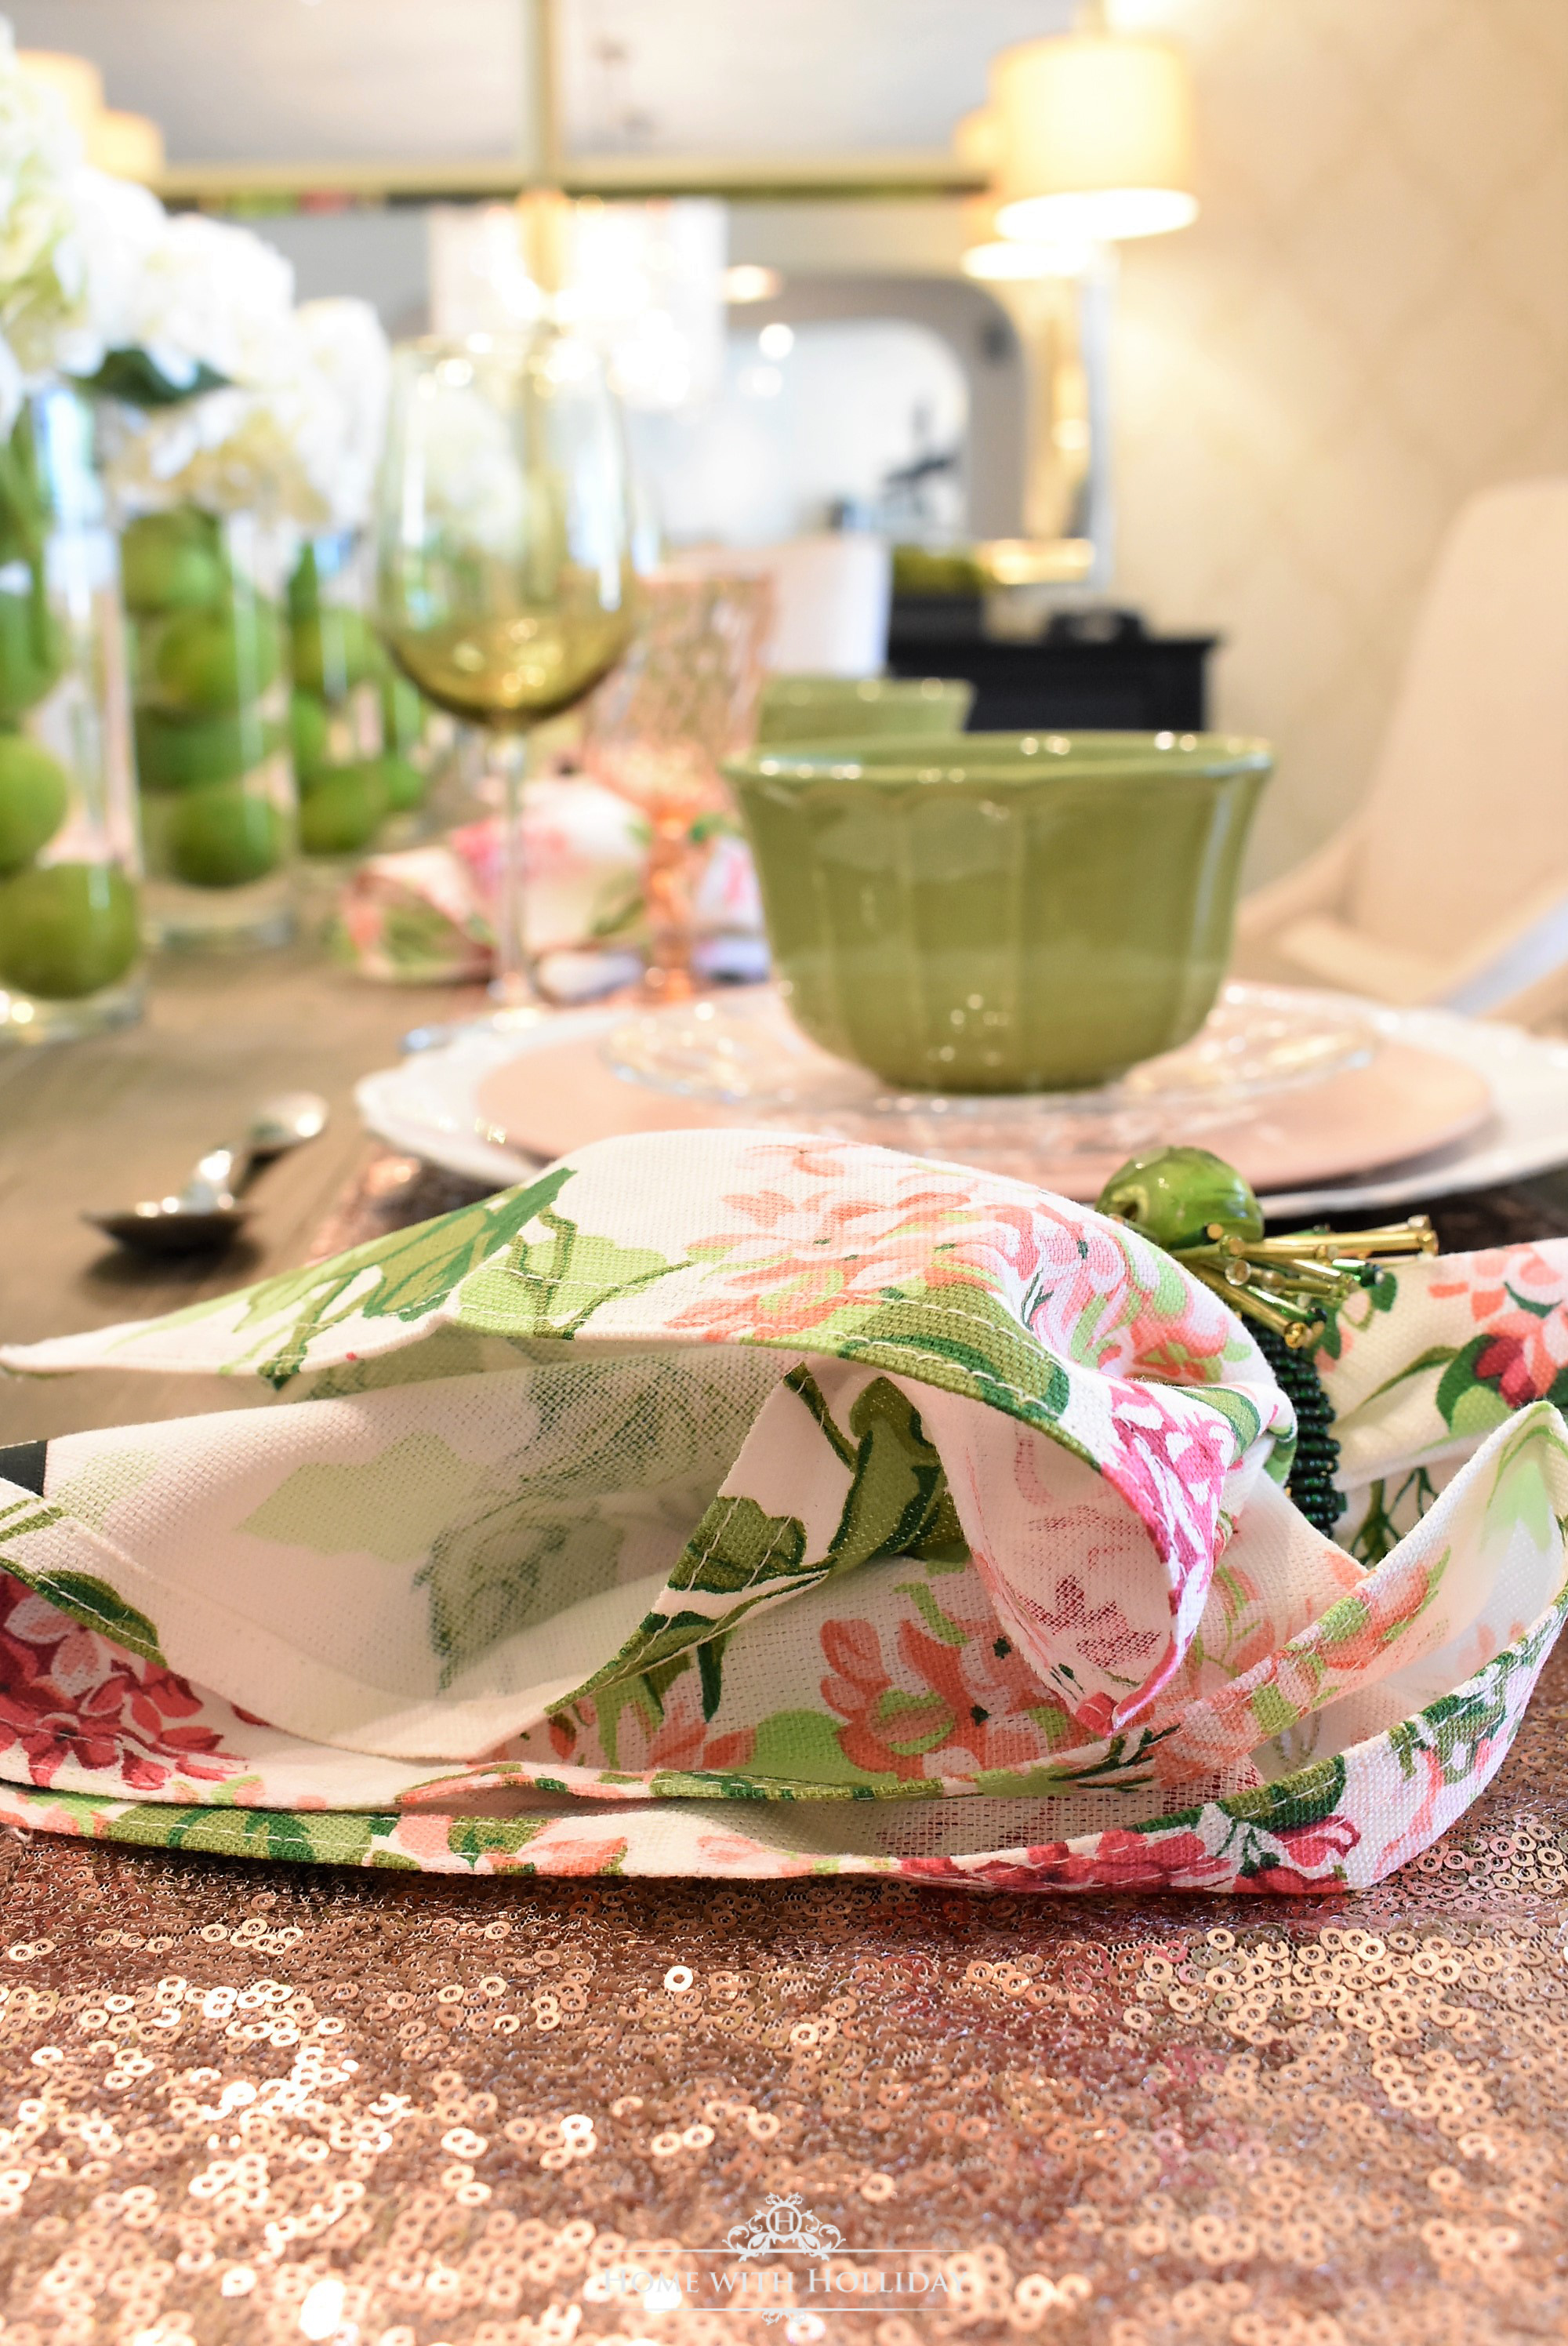 Spring Table Setting for Mother\'s Day Luncheon - Home with Holliday